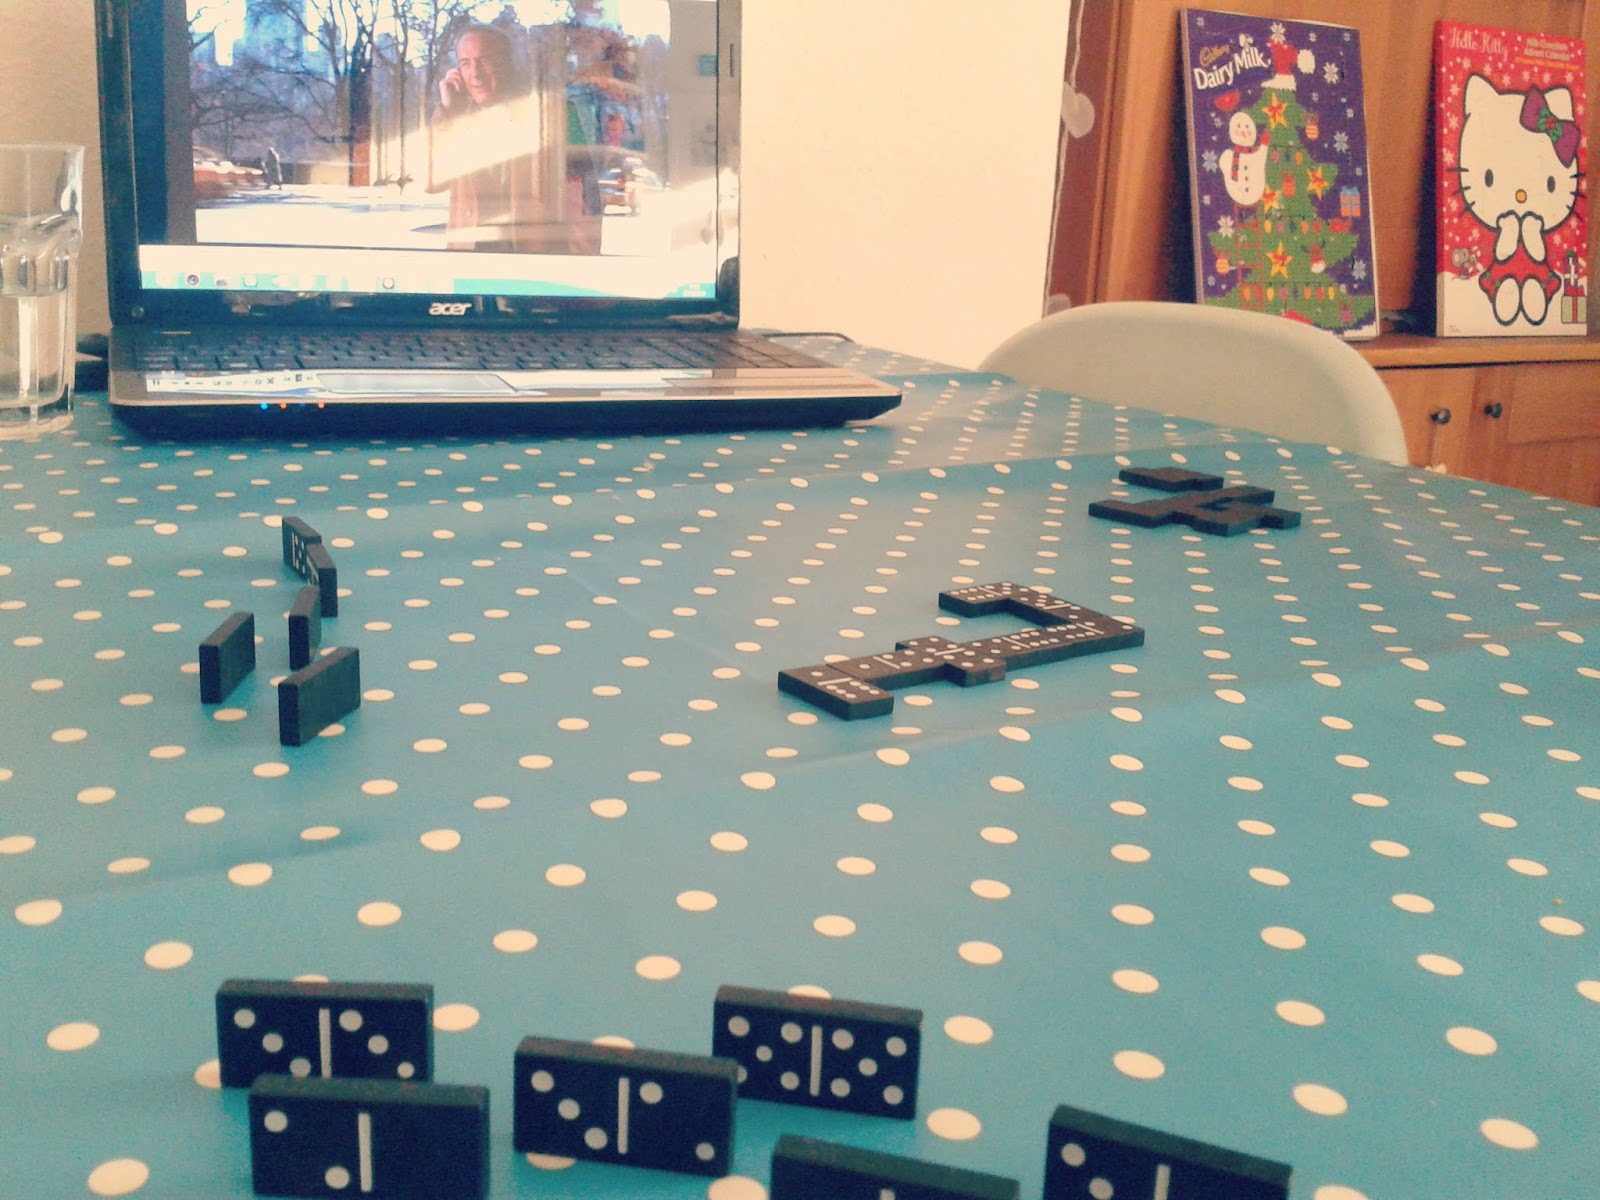 Project 365 day 358 - Christmas Eve Dominoes // 76sunflowers